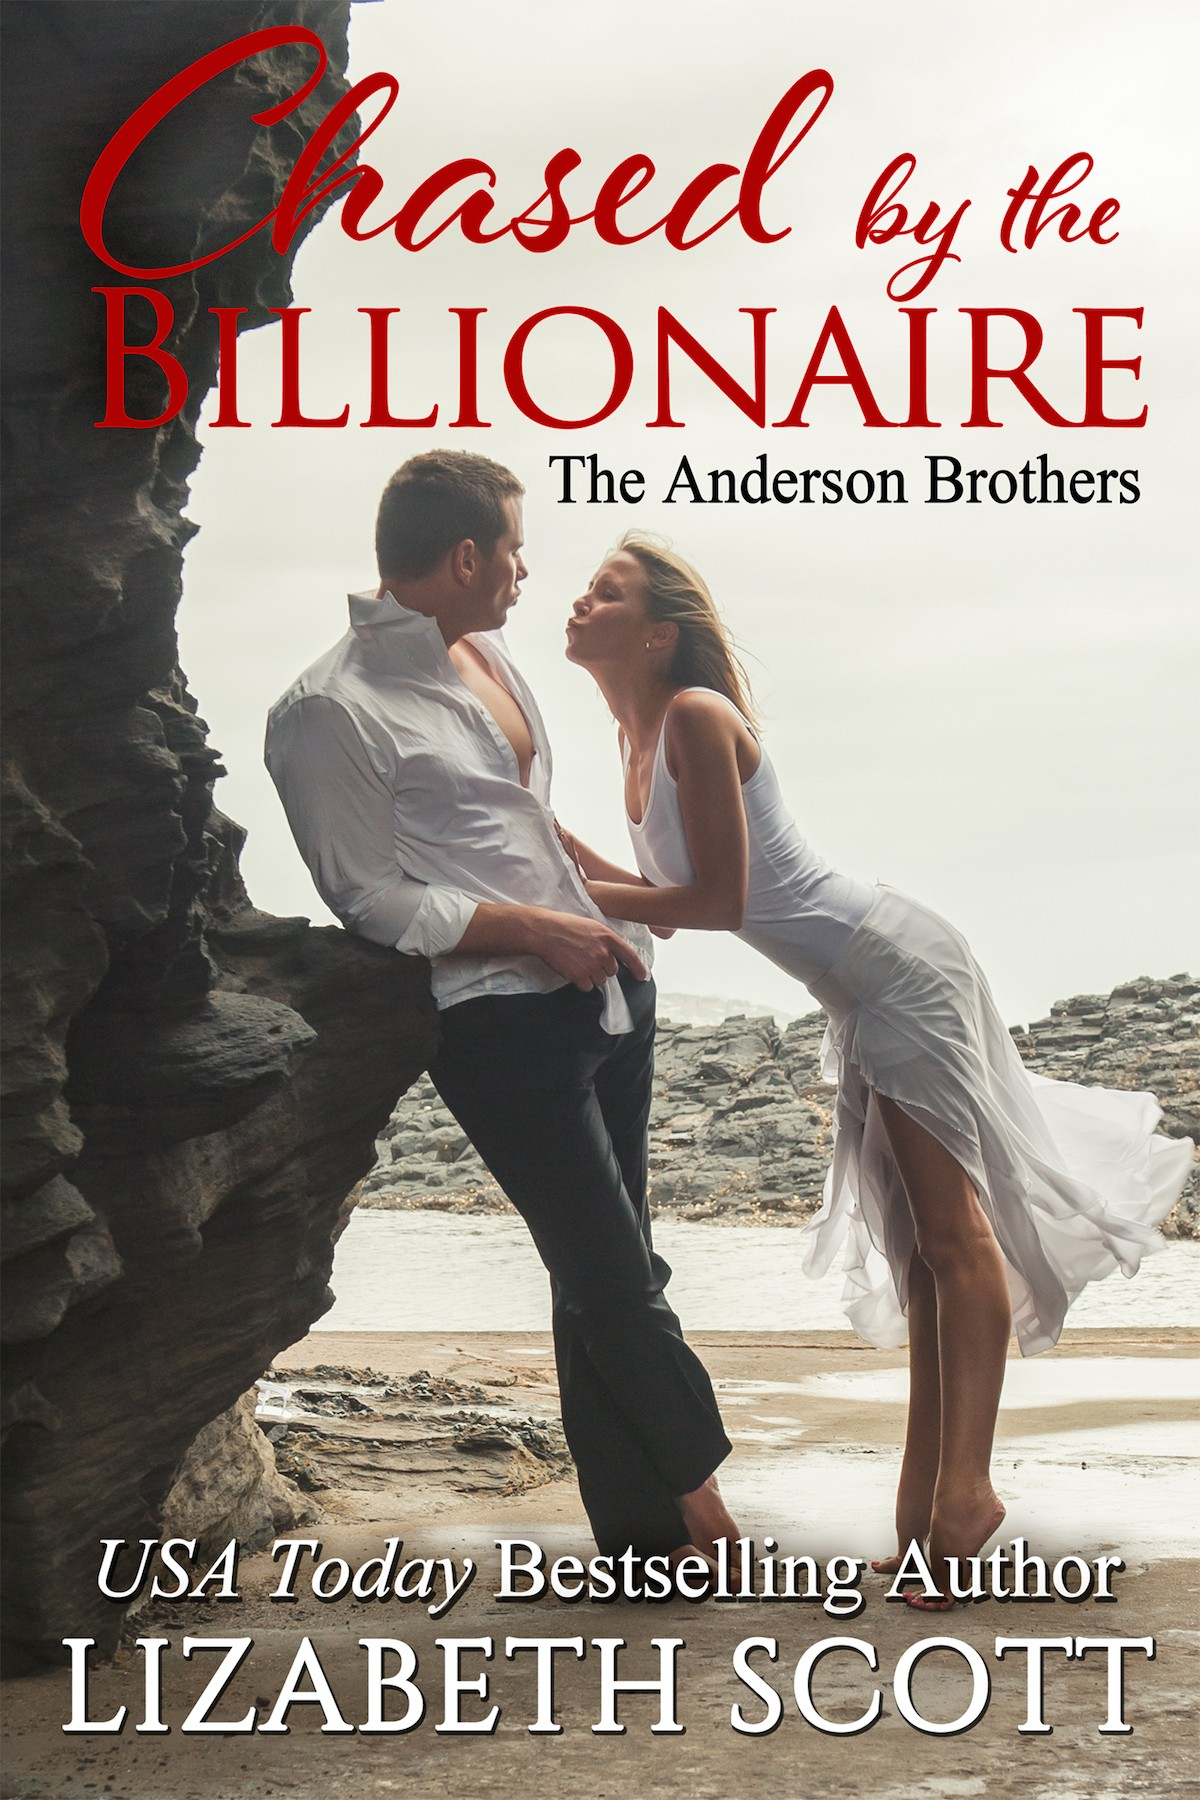 Chased by the Billionaire, Kissed Series, Contemporary Romance, Lizabeth Scott